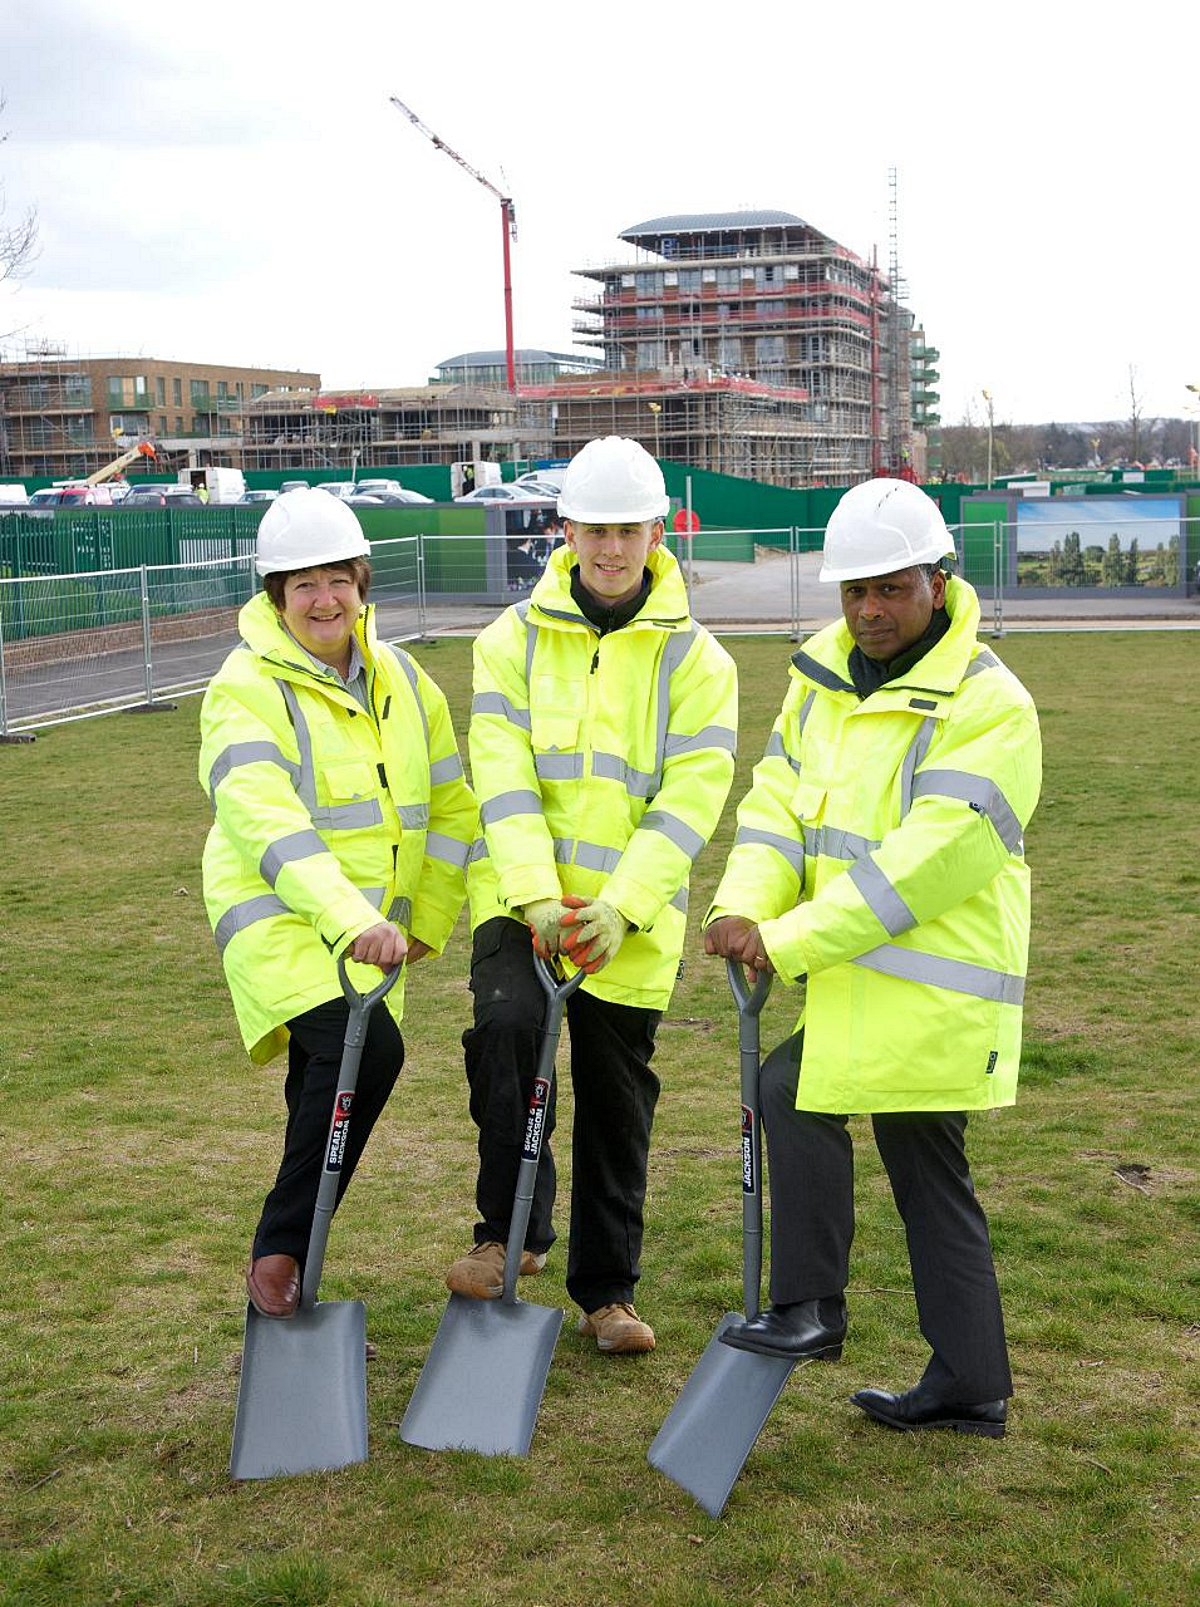 Work begins on Kidbrooke Construction Skills Centre, pictured L to R Councillor Denise Hyland,  construction apprentice Perry Farrugia and Principal of Greenwich Community College Gary Chinn